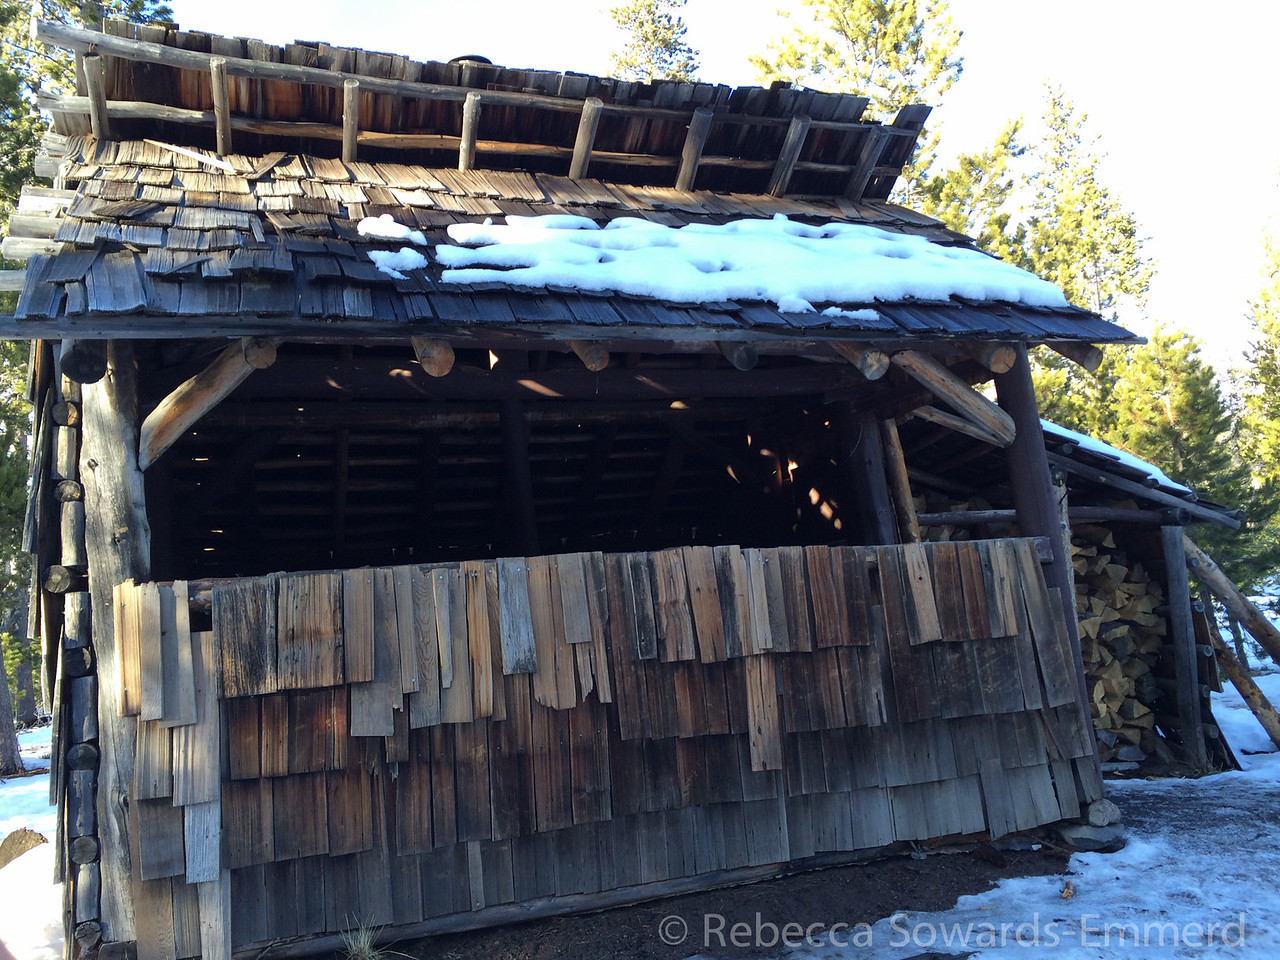 We did the 4 mile round trip ski to the Swampy hut. It had a stove inside and would have been a nice place to stop for a hot chocolate if 1) we weren't running out of daylight and 2) it was cold enough to want hot chocolate.